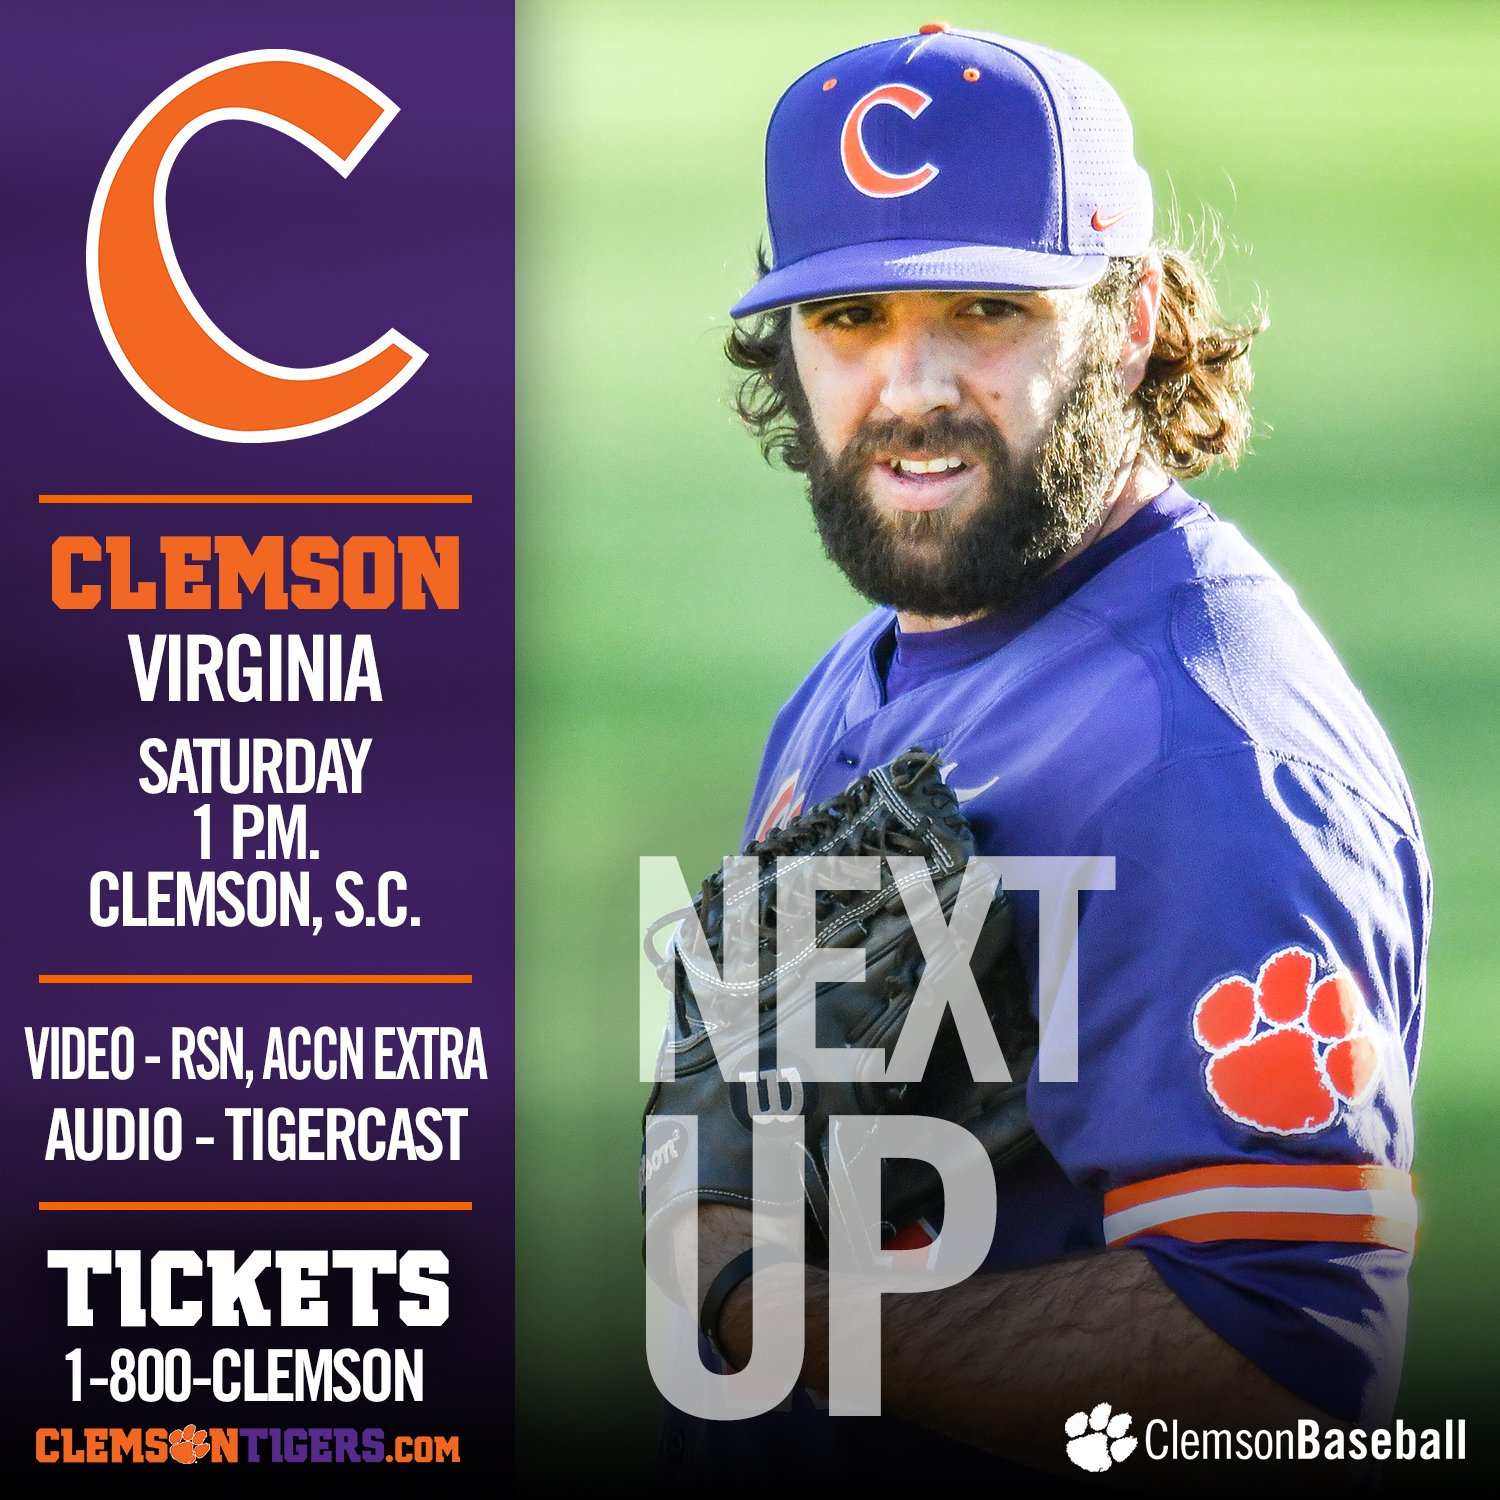 It's a new day at DKS when #Clemson plays No. 11 Virginia at 1 p.m.! 🐾  GAMEDAY - https://t.co/ZH1qSezomY https://t.co/tjfQkPwCQb